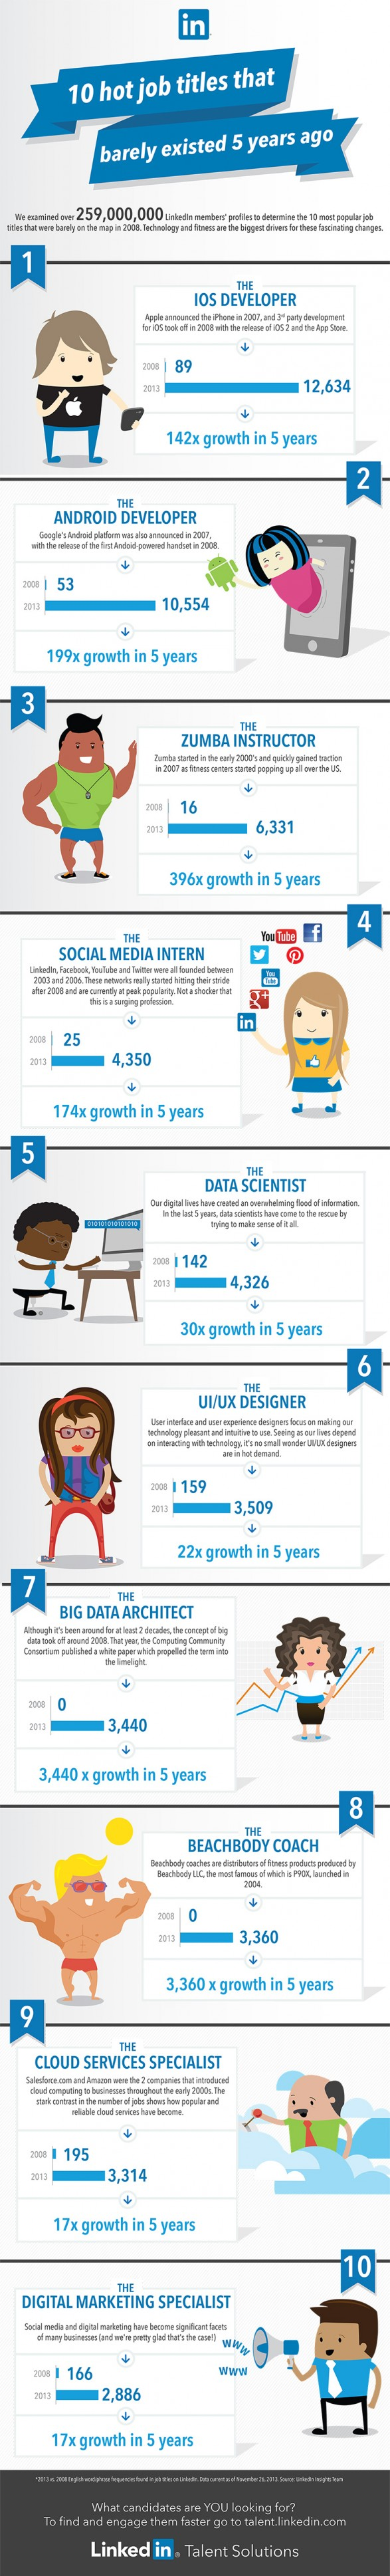 top-10-job-titles-that-didnt-exist-5-years-ago_52cae9af44587_w587